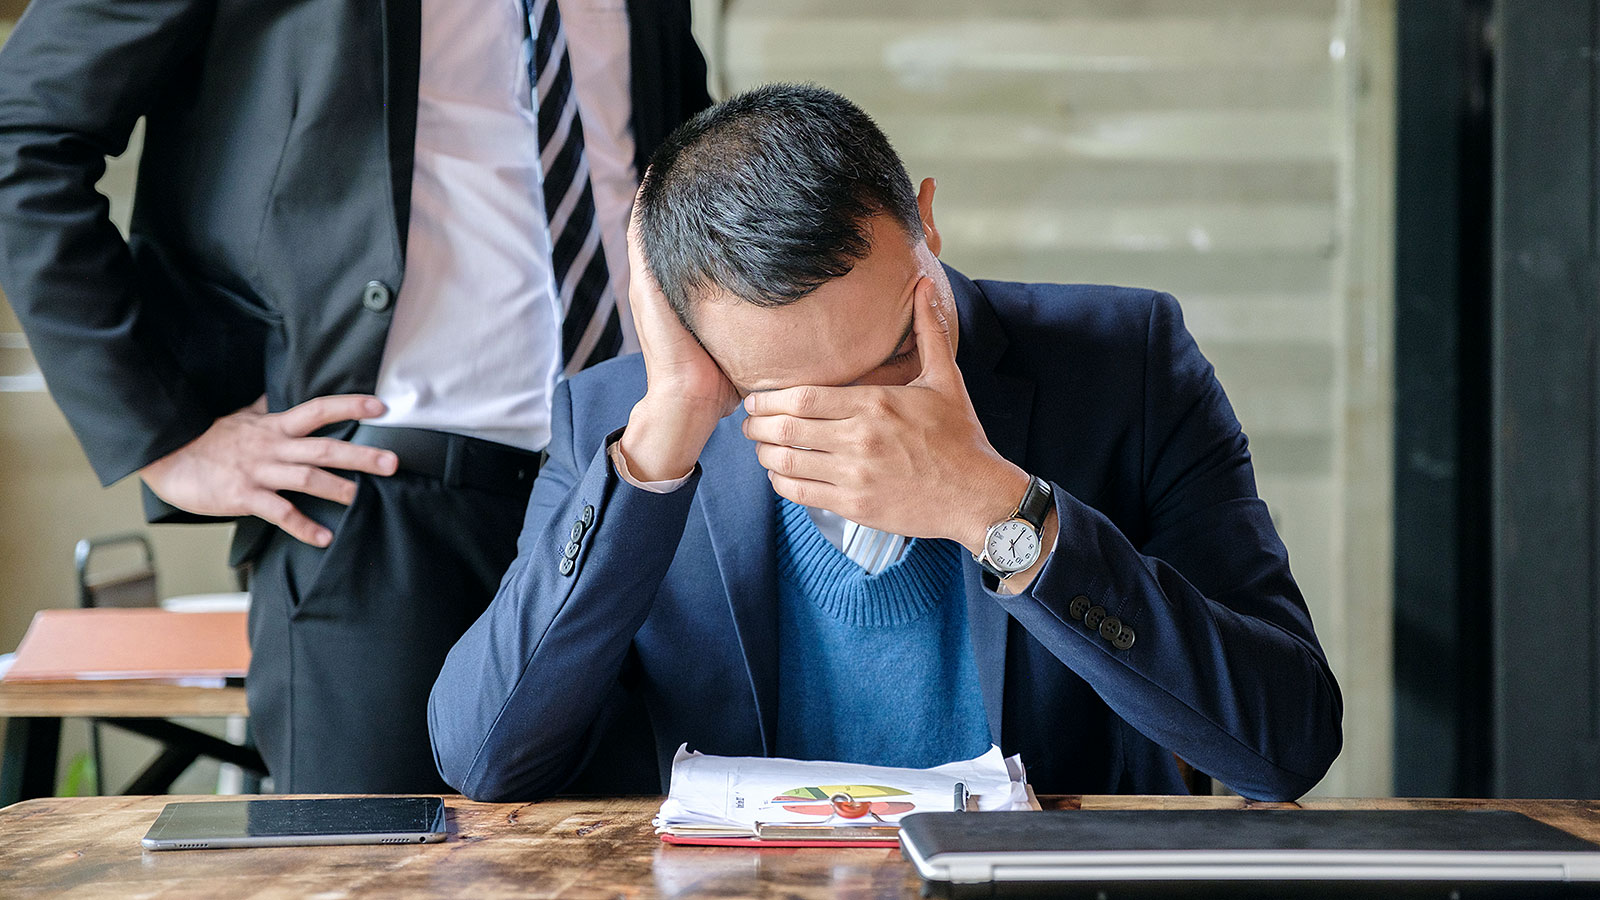 5 signs you have a toxic boss